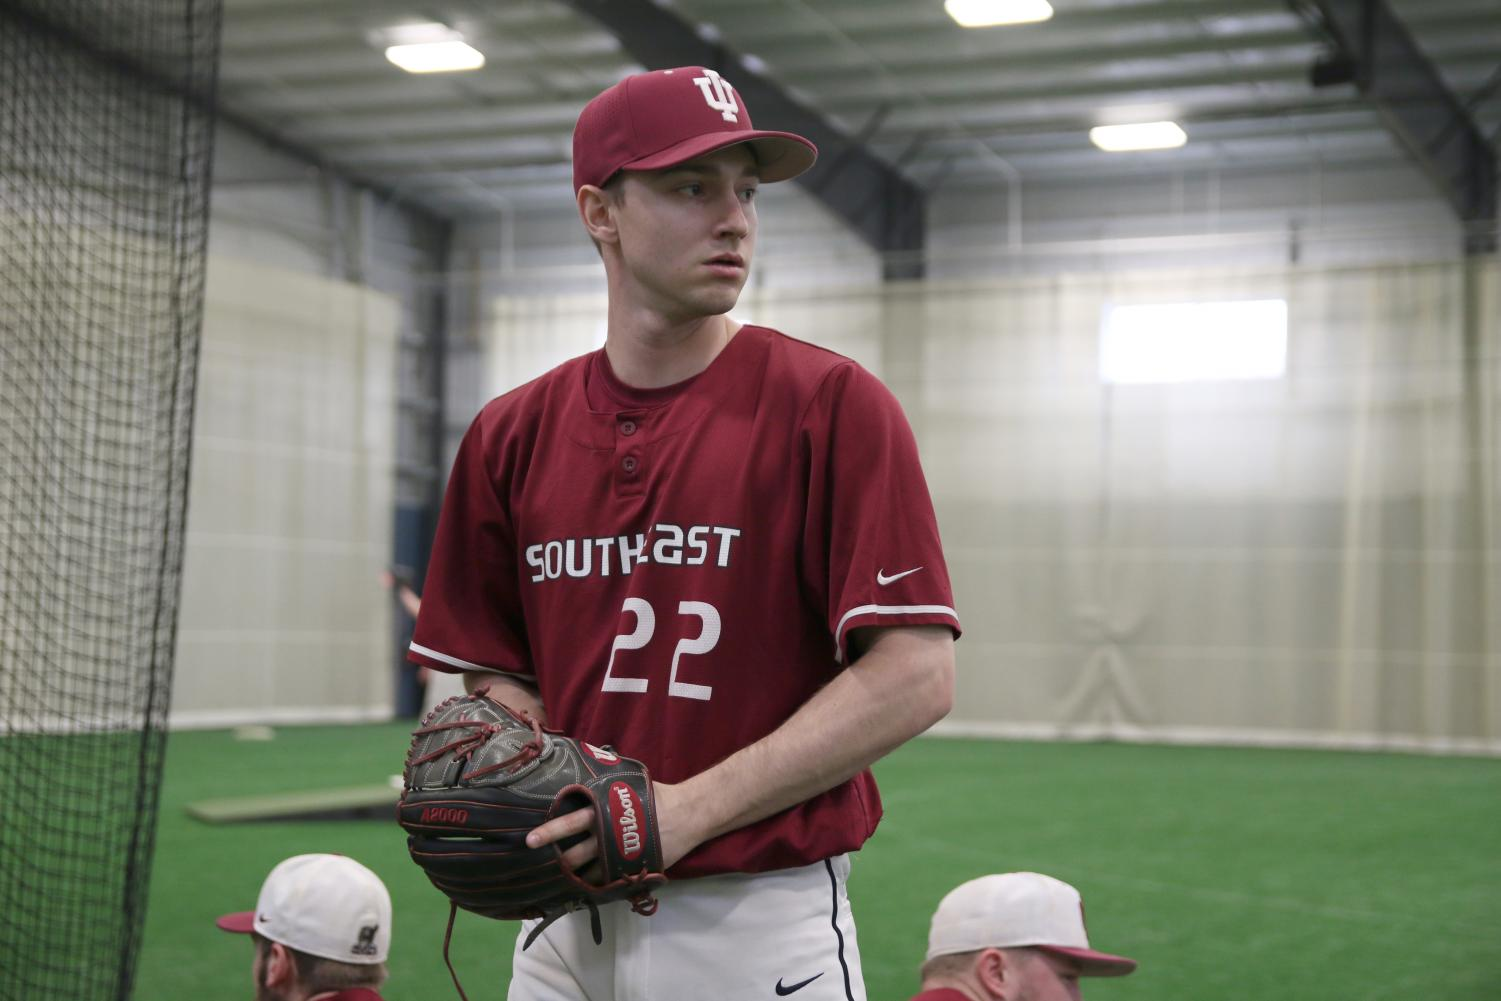 John Cecil, senior right-handed pitcher, warms up from the stretch at practice.